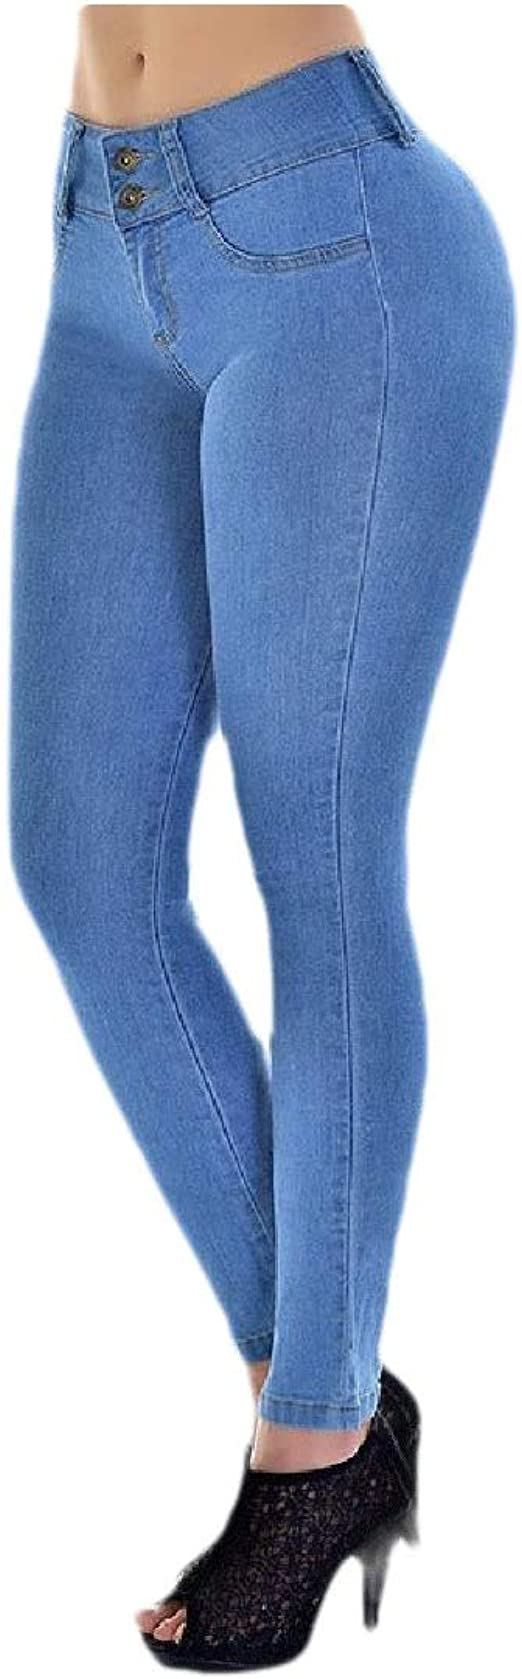 Romancly Womens Pocket Butt Lift Trim-Fit Stretch Sexy Washed Denim Pants